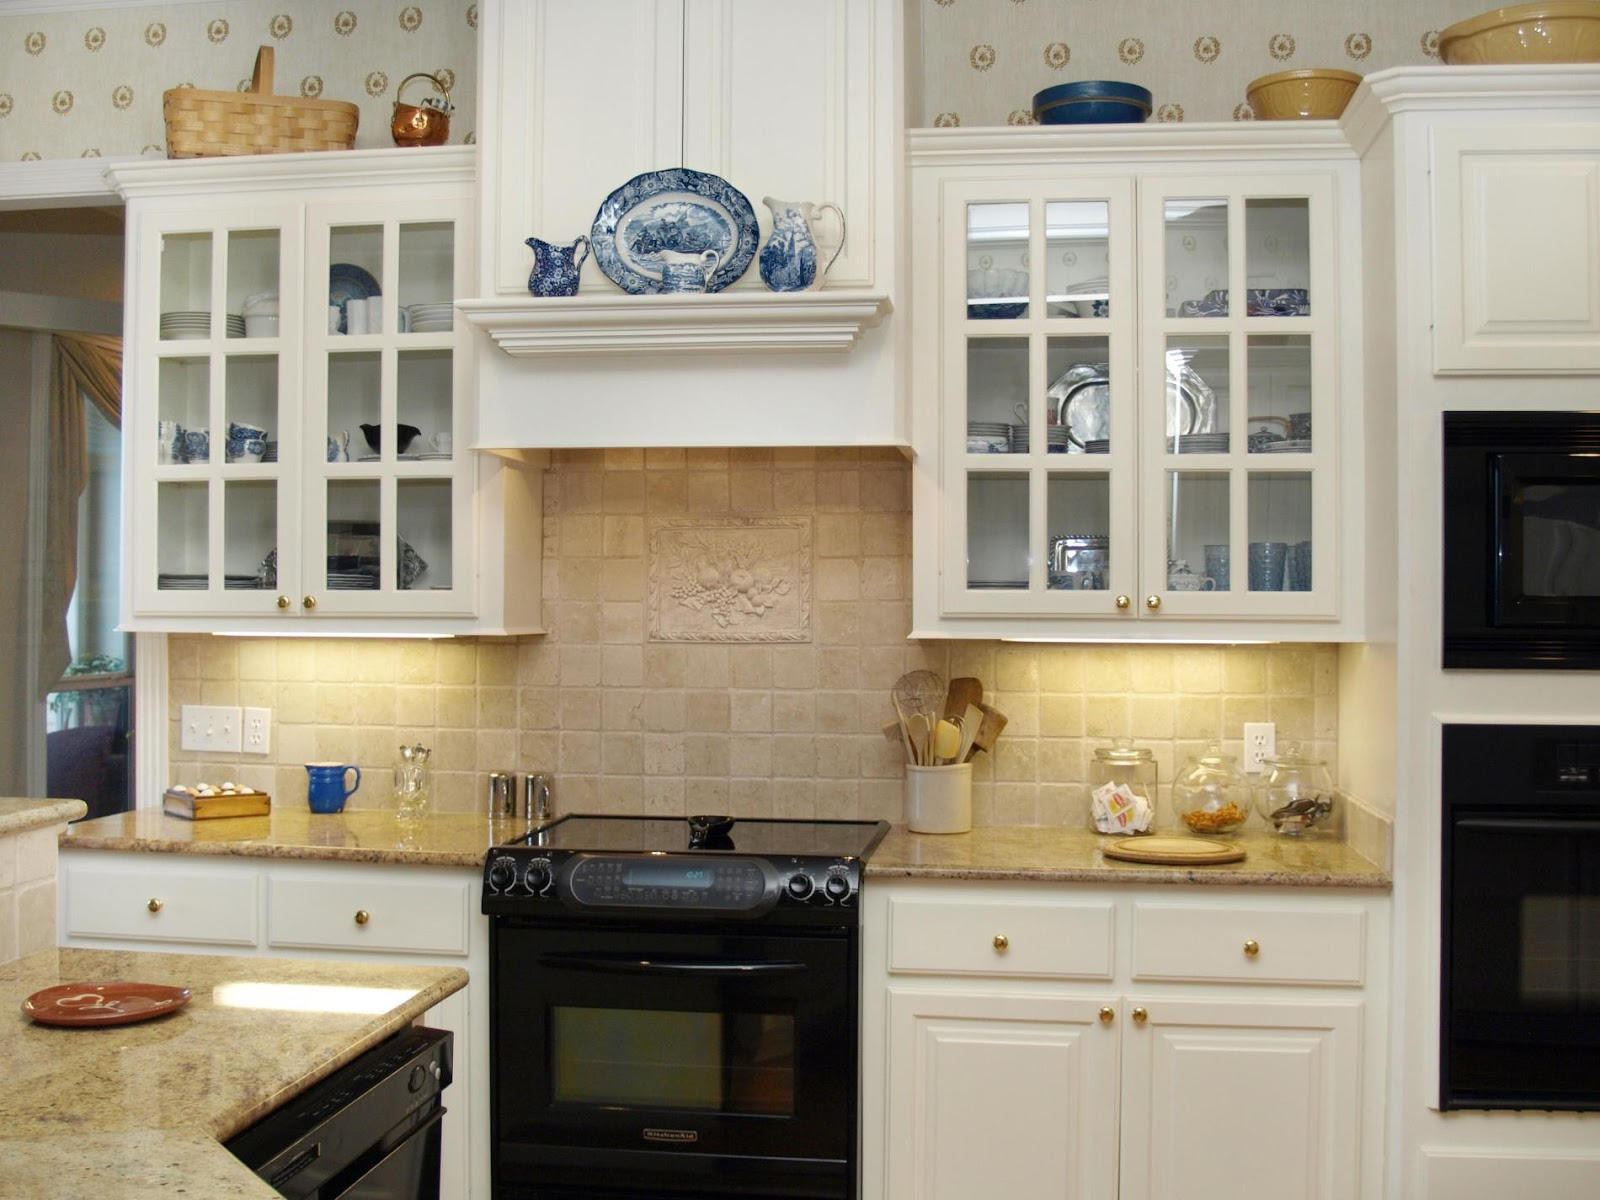 Kitchen shelves decoration dream house experience for Kitchen decoration image